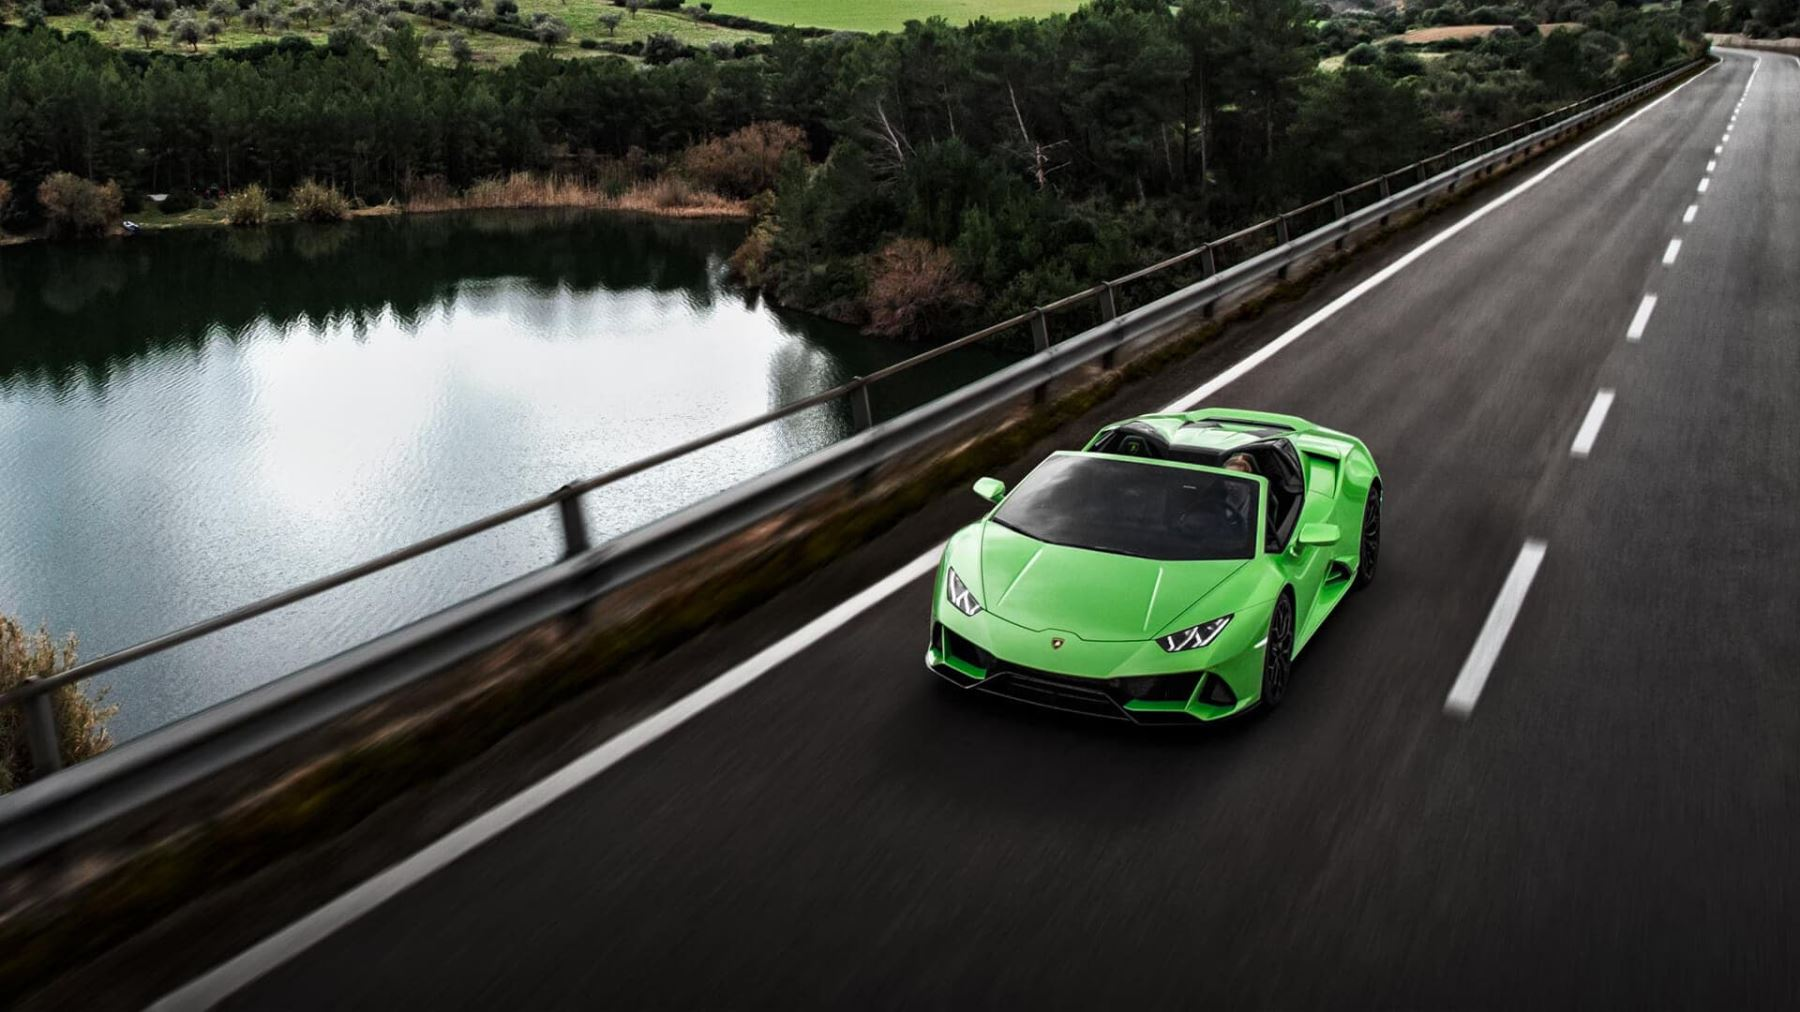 Lamborghini Huracan EVO Spyder - Every Day Amplified